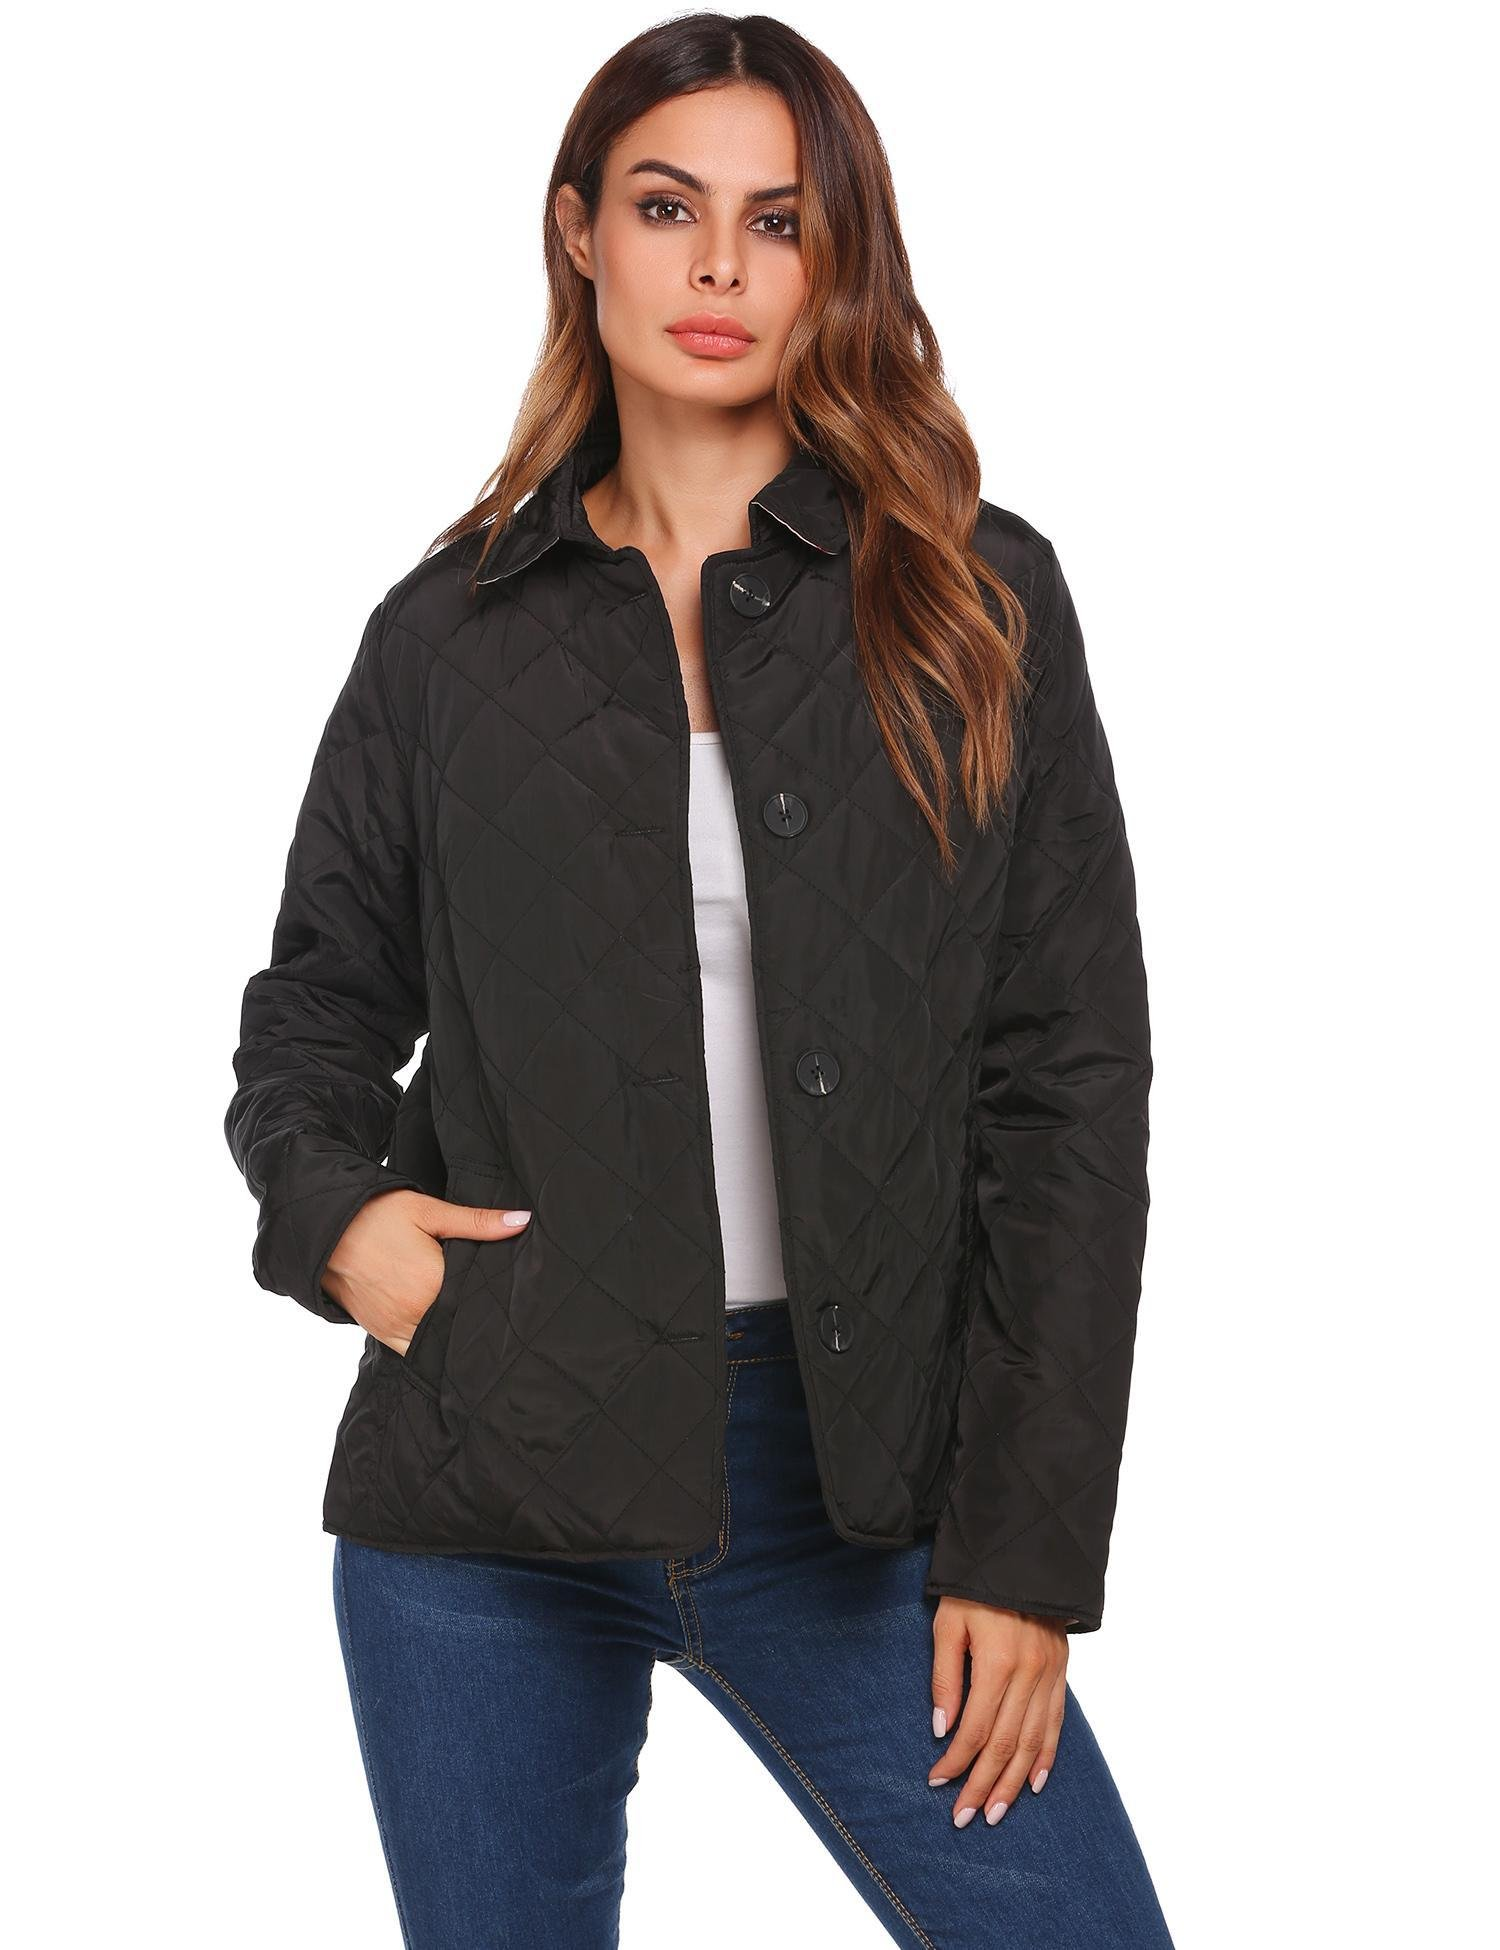 Soteer Women's Diamond Quilted Jacket Stand Collar Button End with Pocket Coat Black XXL